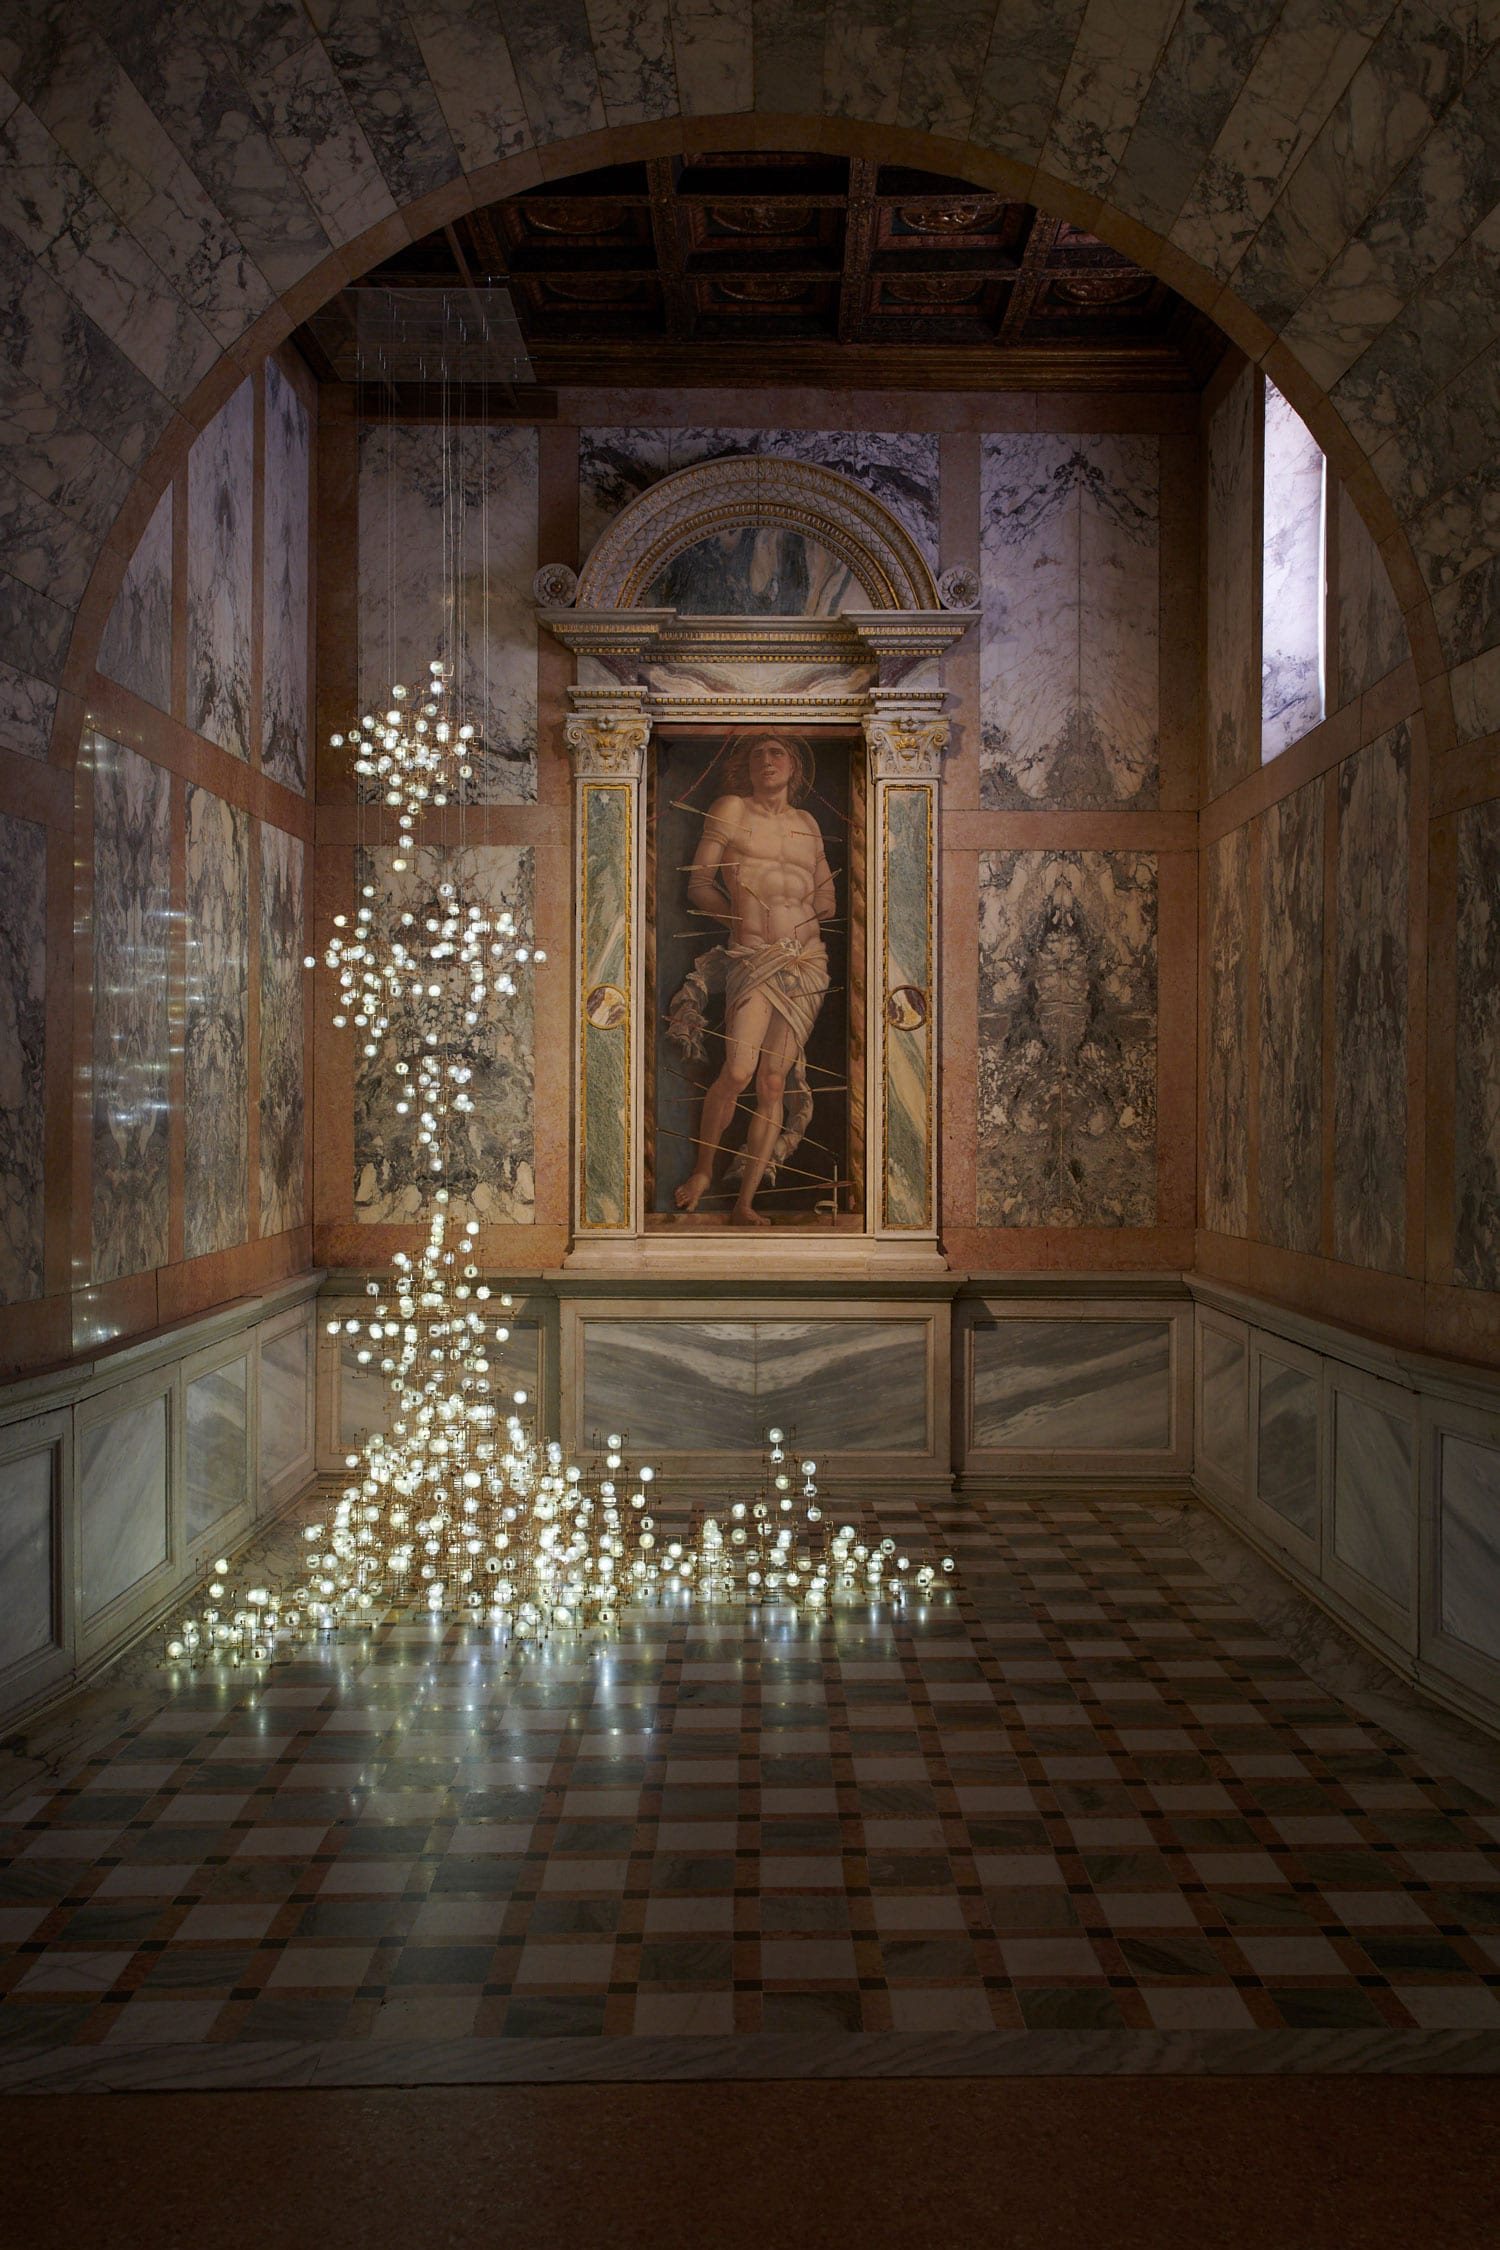 Fragile Future Chandelier by Studio Drift at Venice Art Biennale 2019 | Yellowtrace